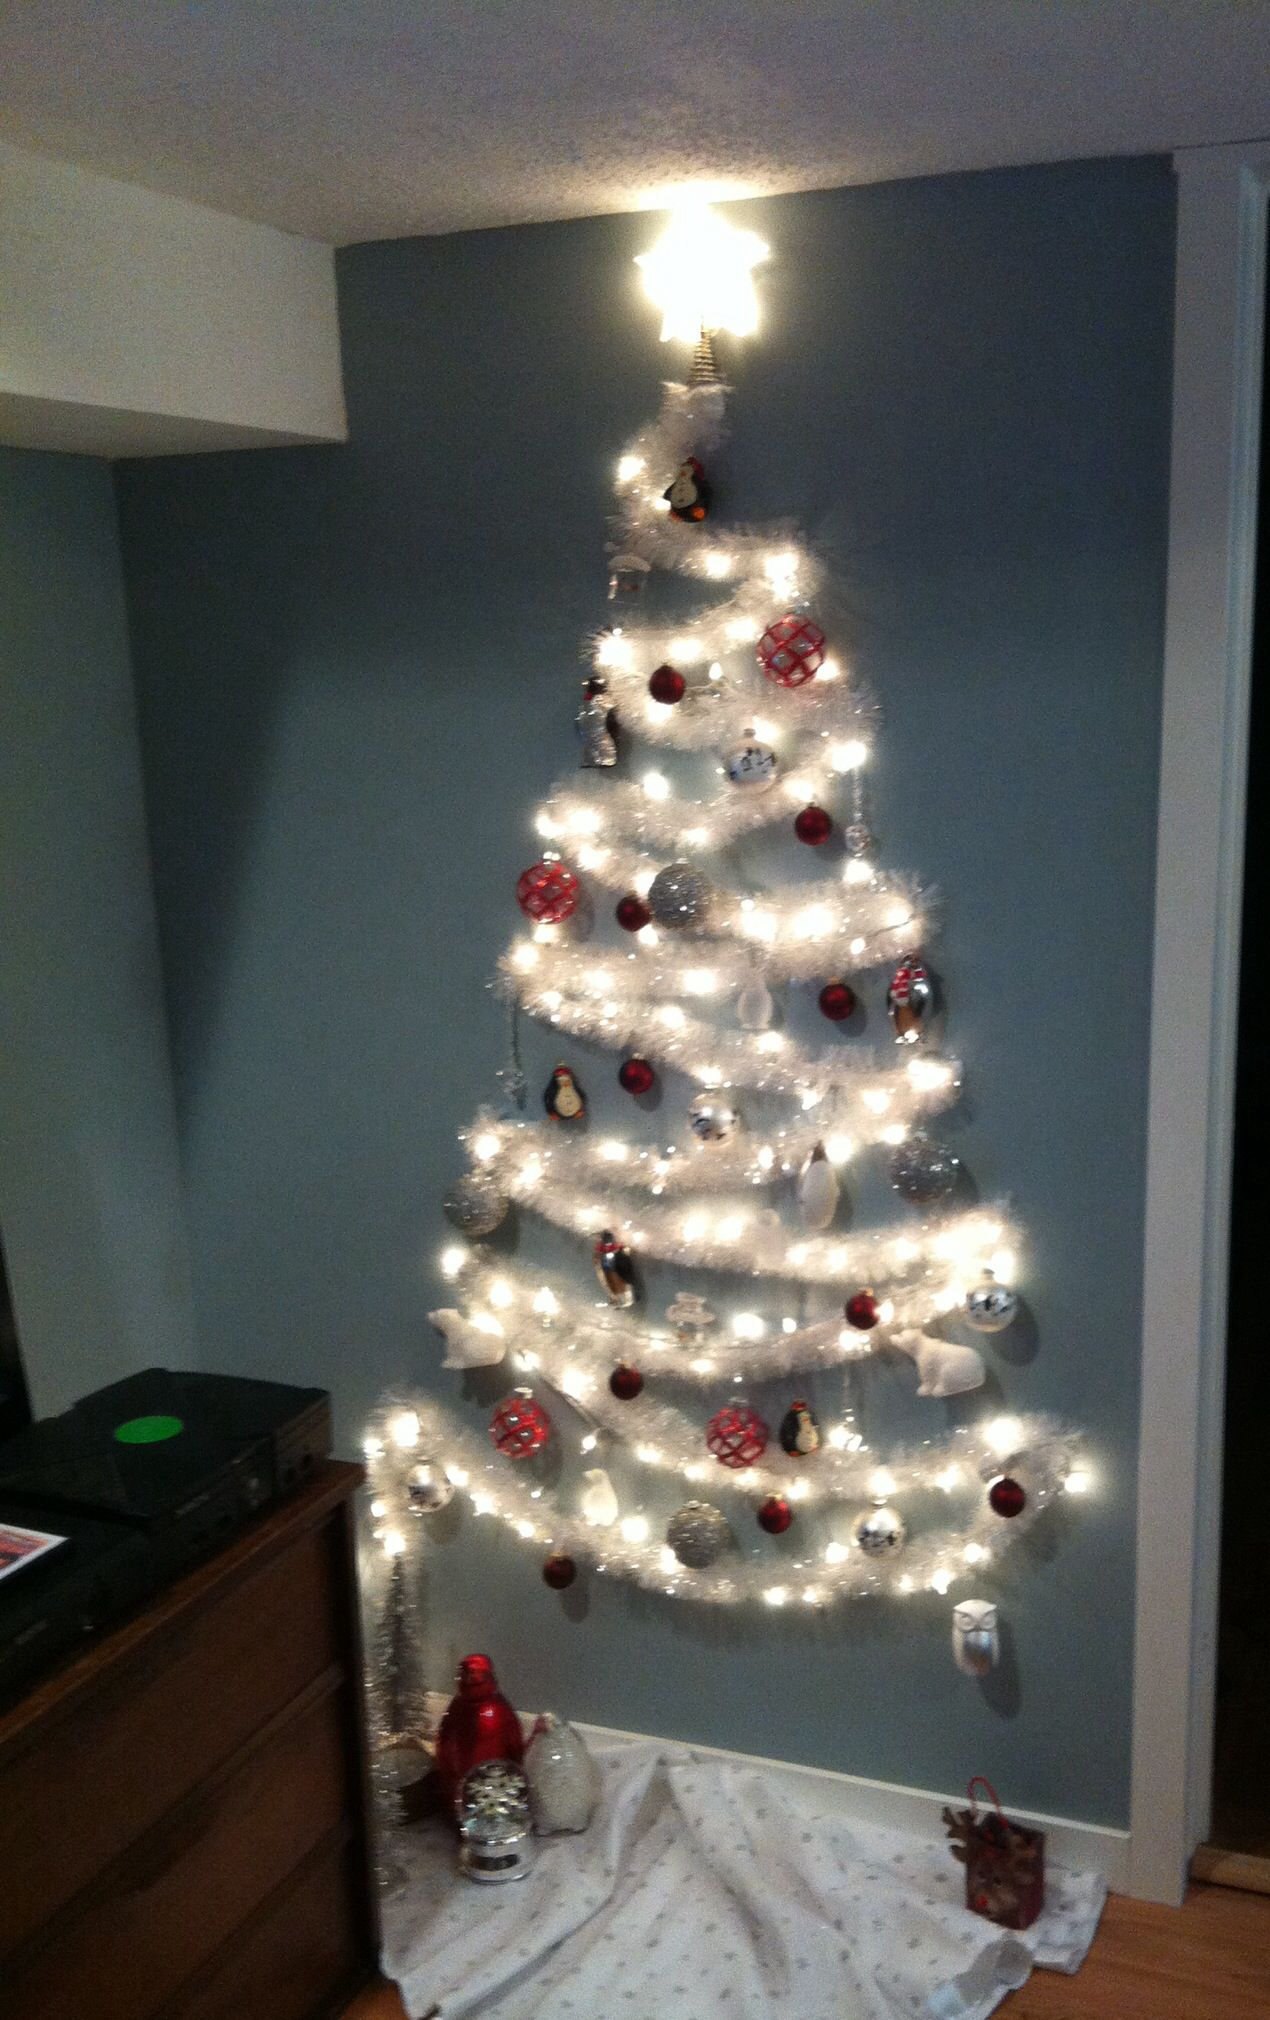 The No Tree Christmas Tree | College | Pinterest | Wall christmas ...